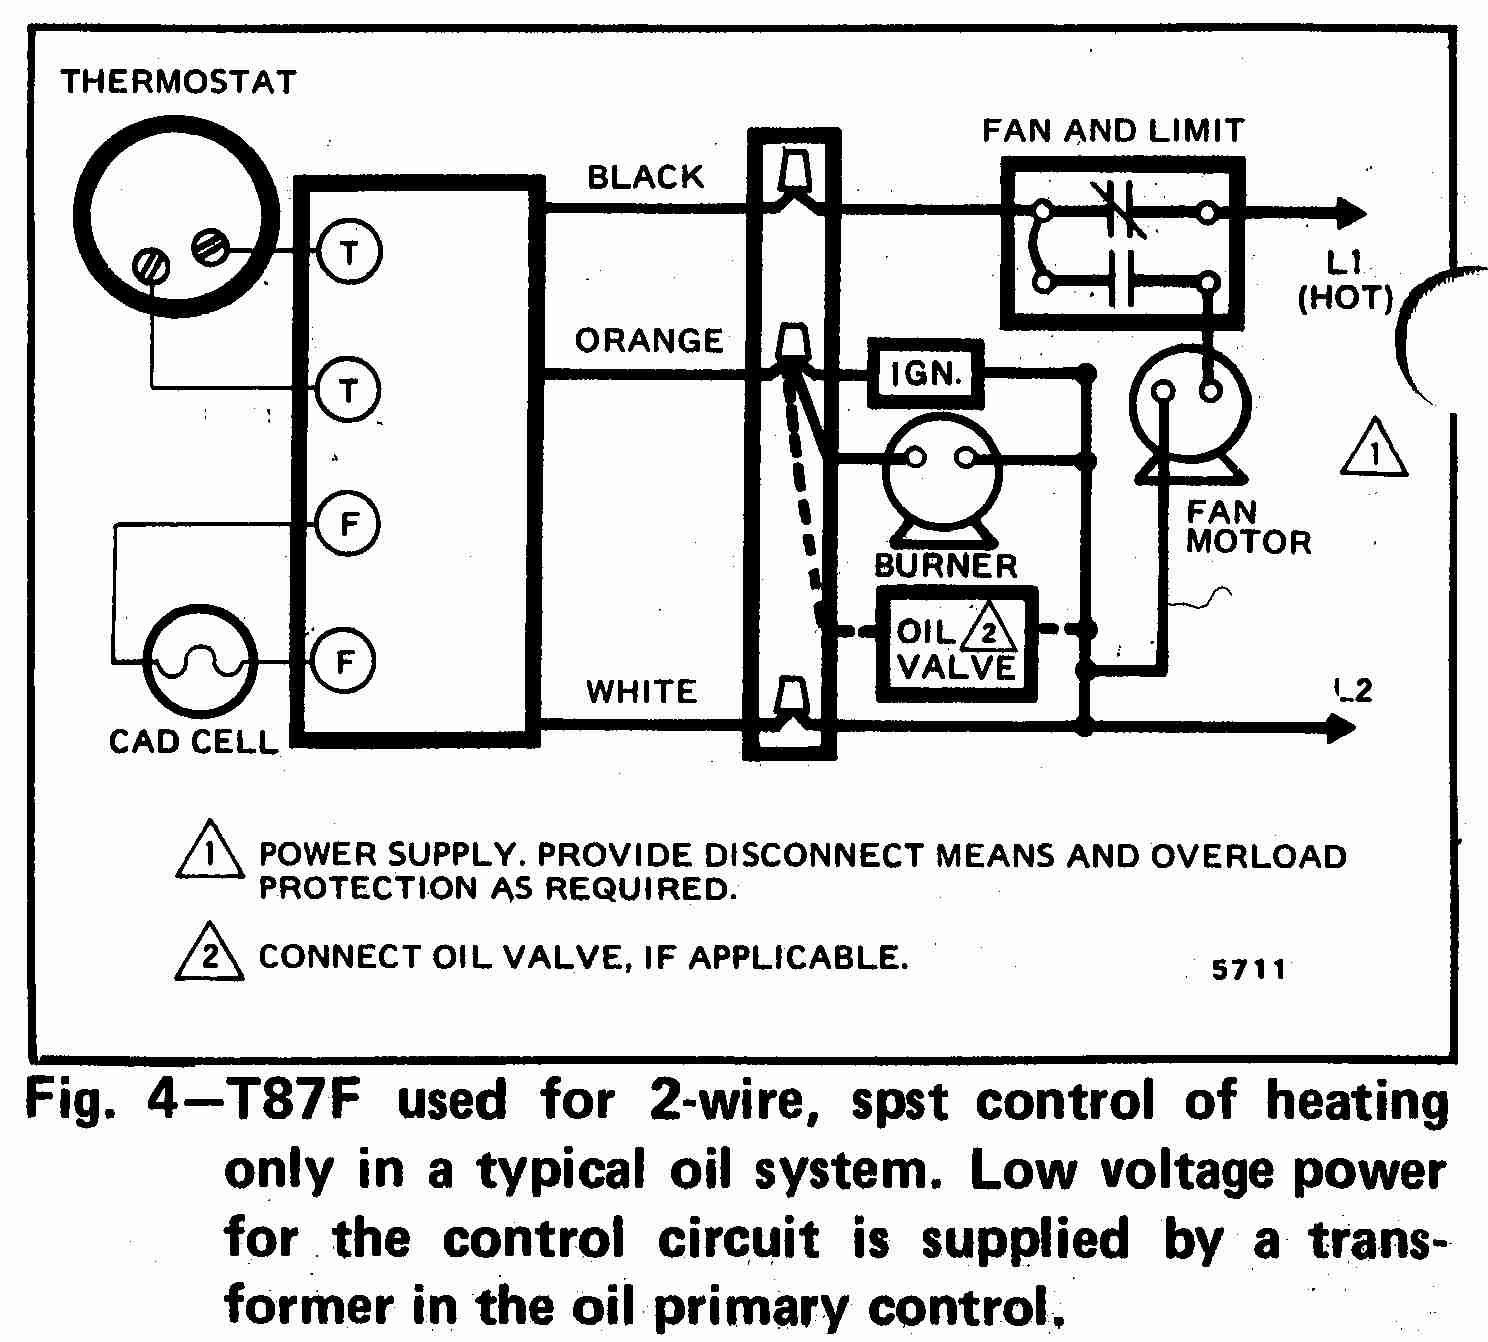 [TBQL_4184]  Unique Westinghouse Electric Furnace Wiring Diagram #diagram #diagramsample  #diagramtemplate #wiringdiagram … | Thermostat wiring, Honeywell  thermostats, Thermostat | Wiring Diagram Oil System |  | Pinterest